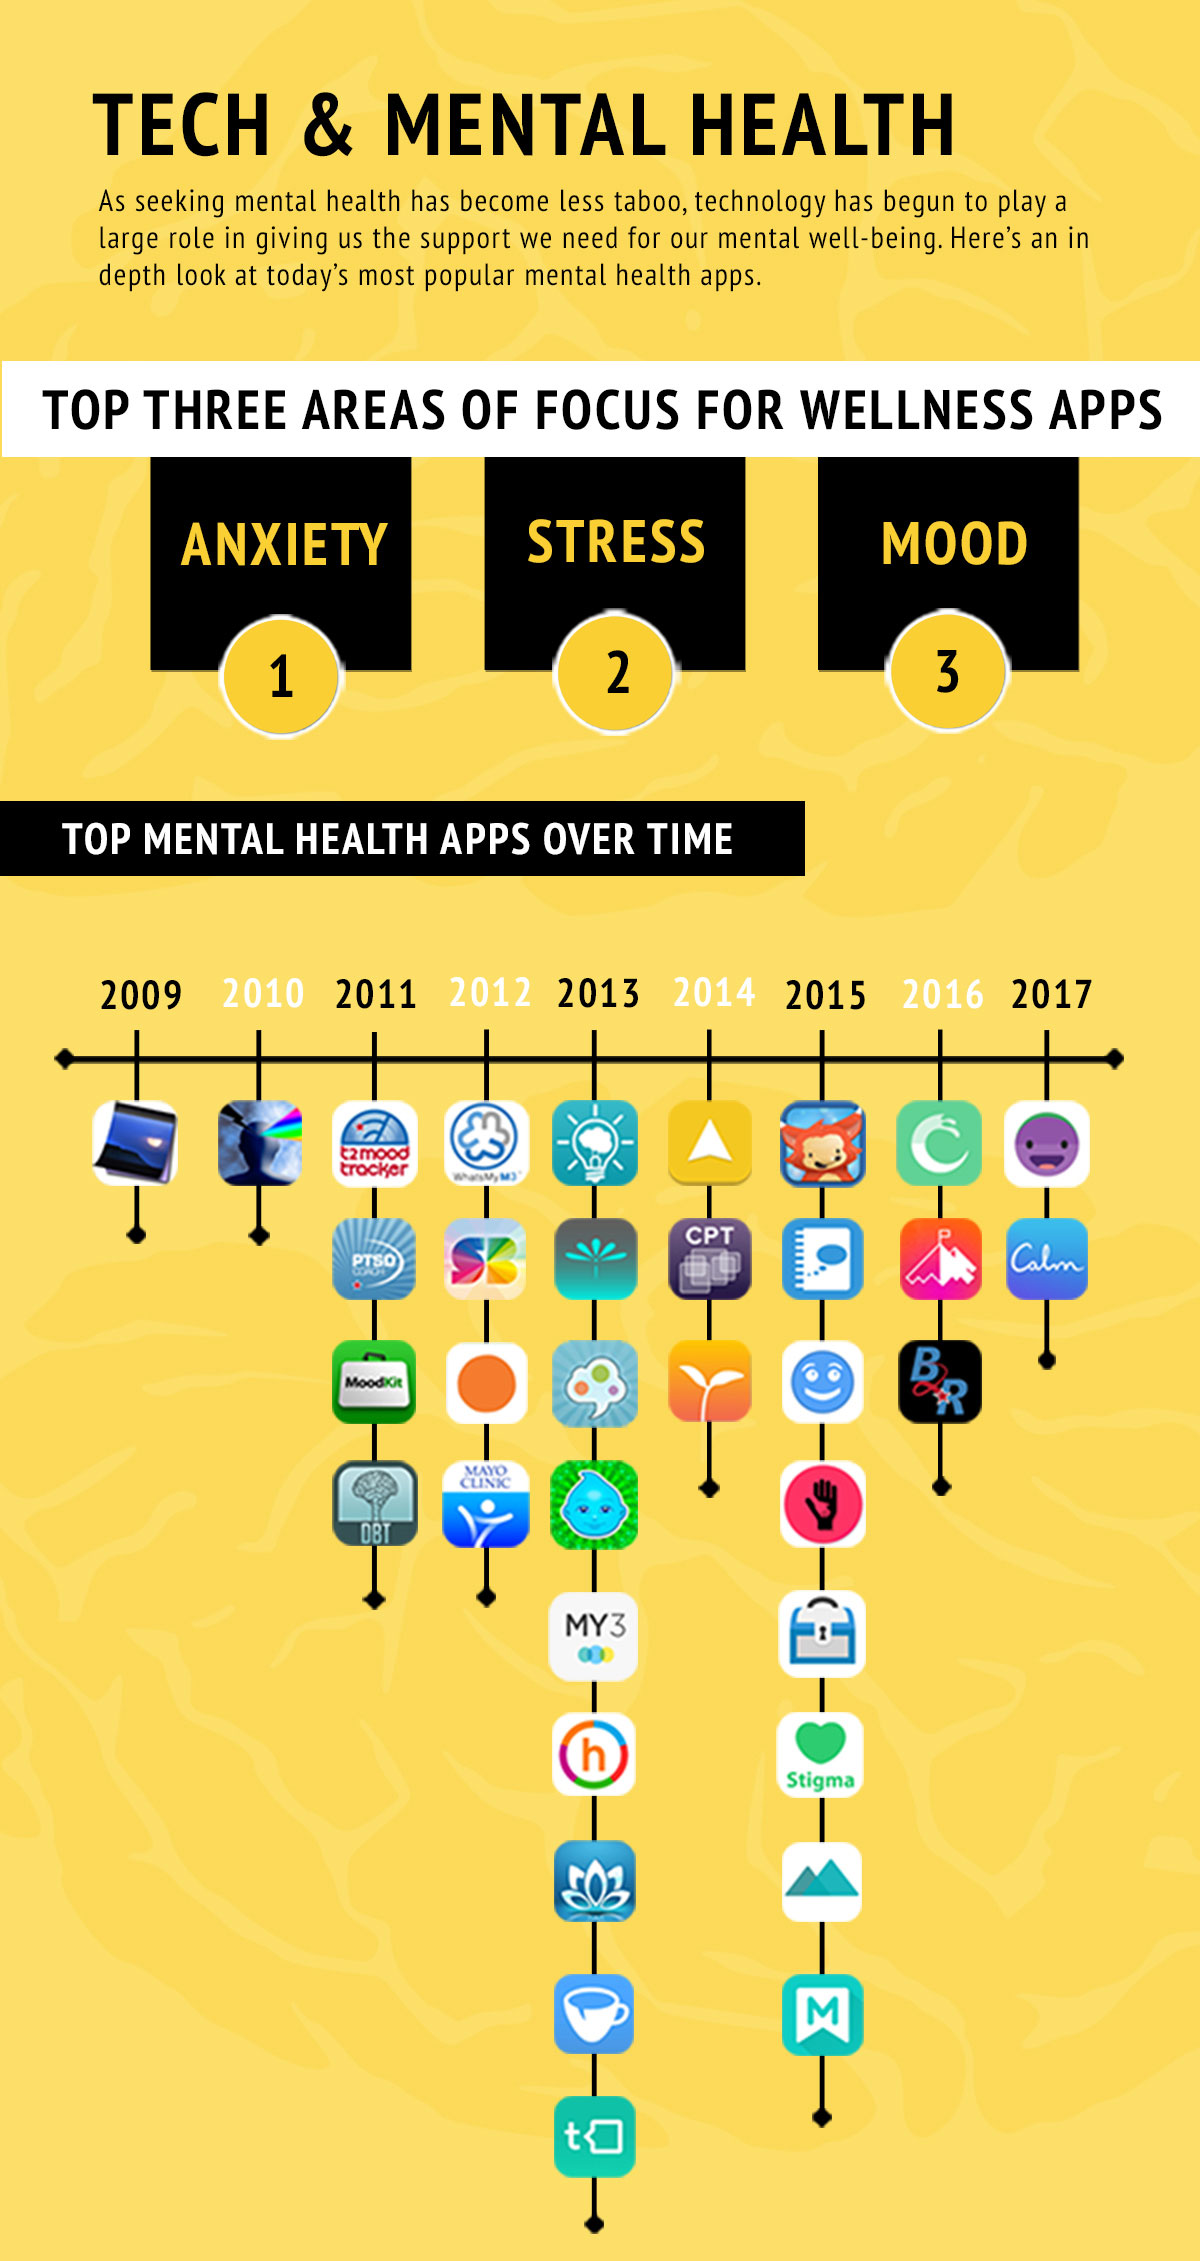 Top 3 Areas of Focus for Wellness Apps